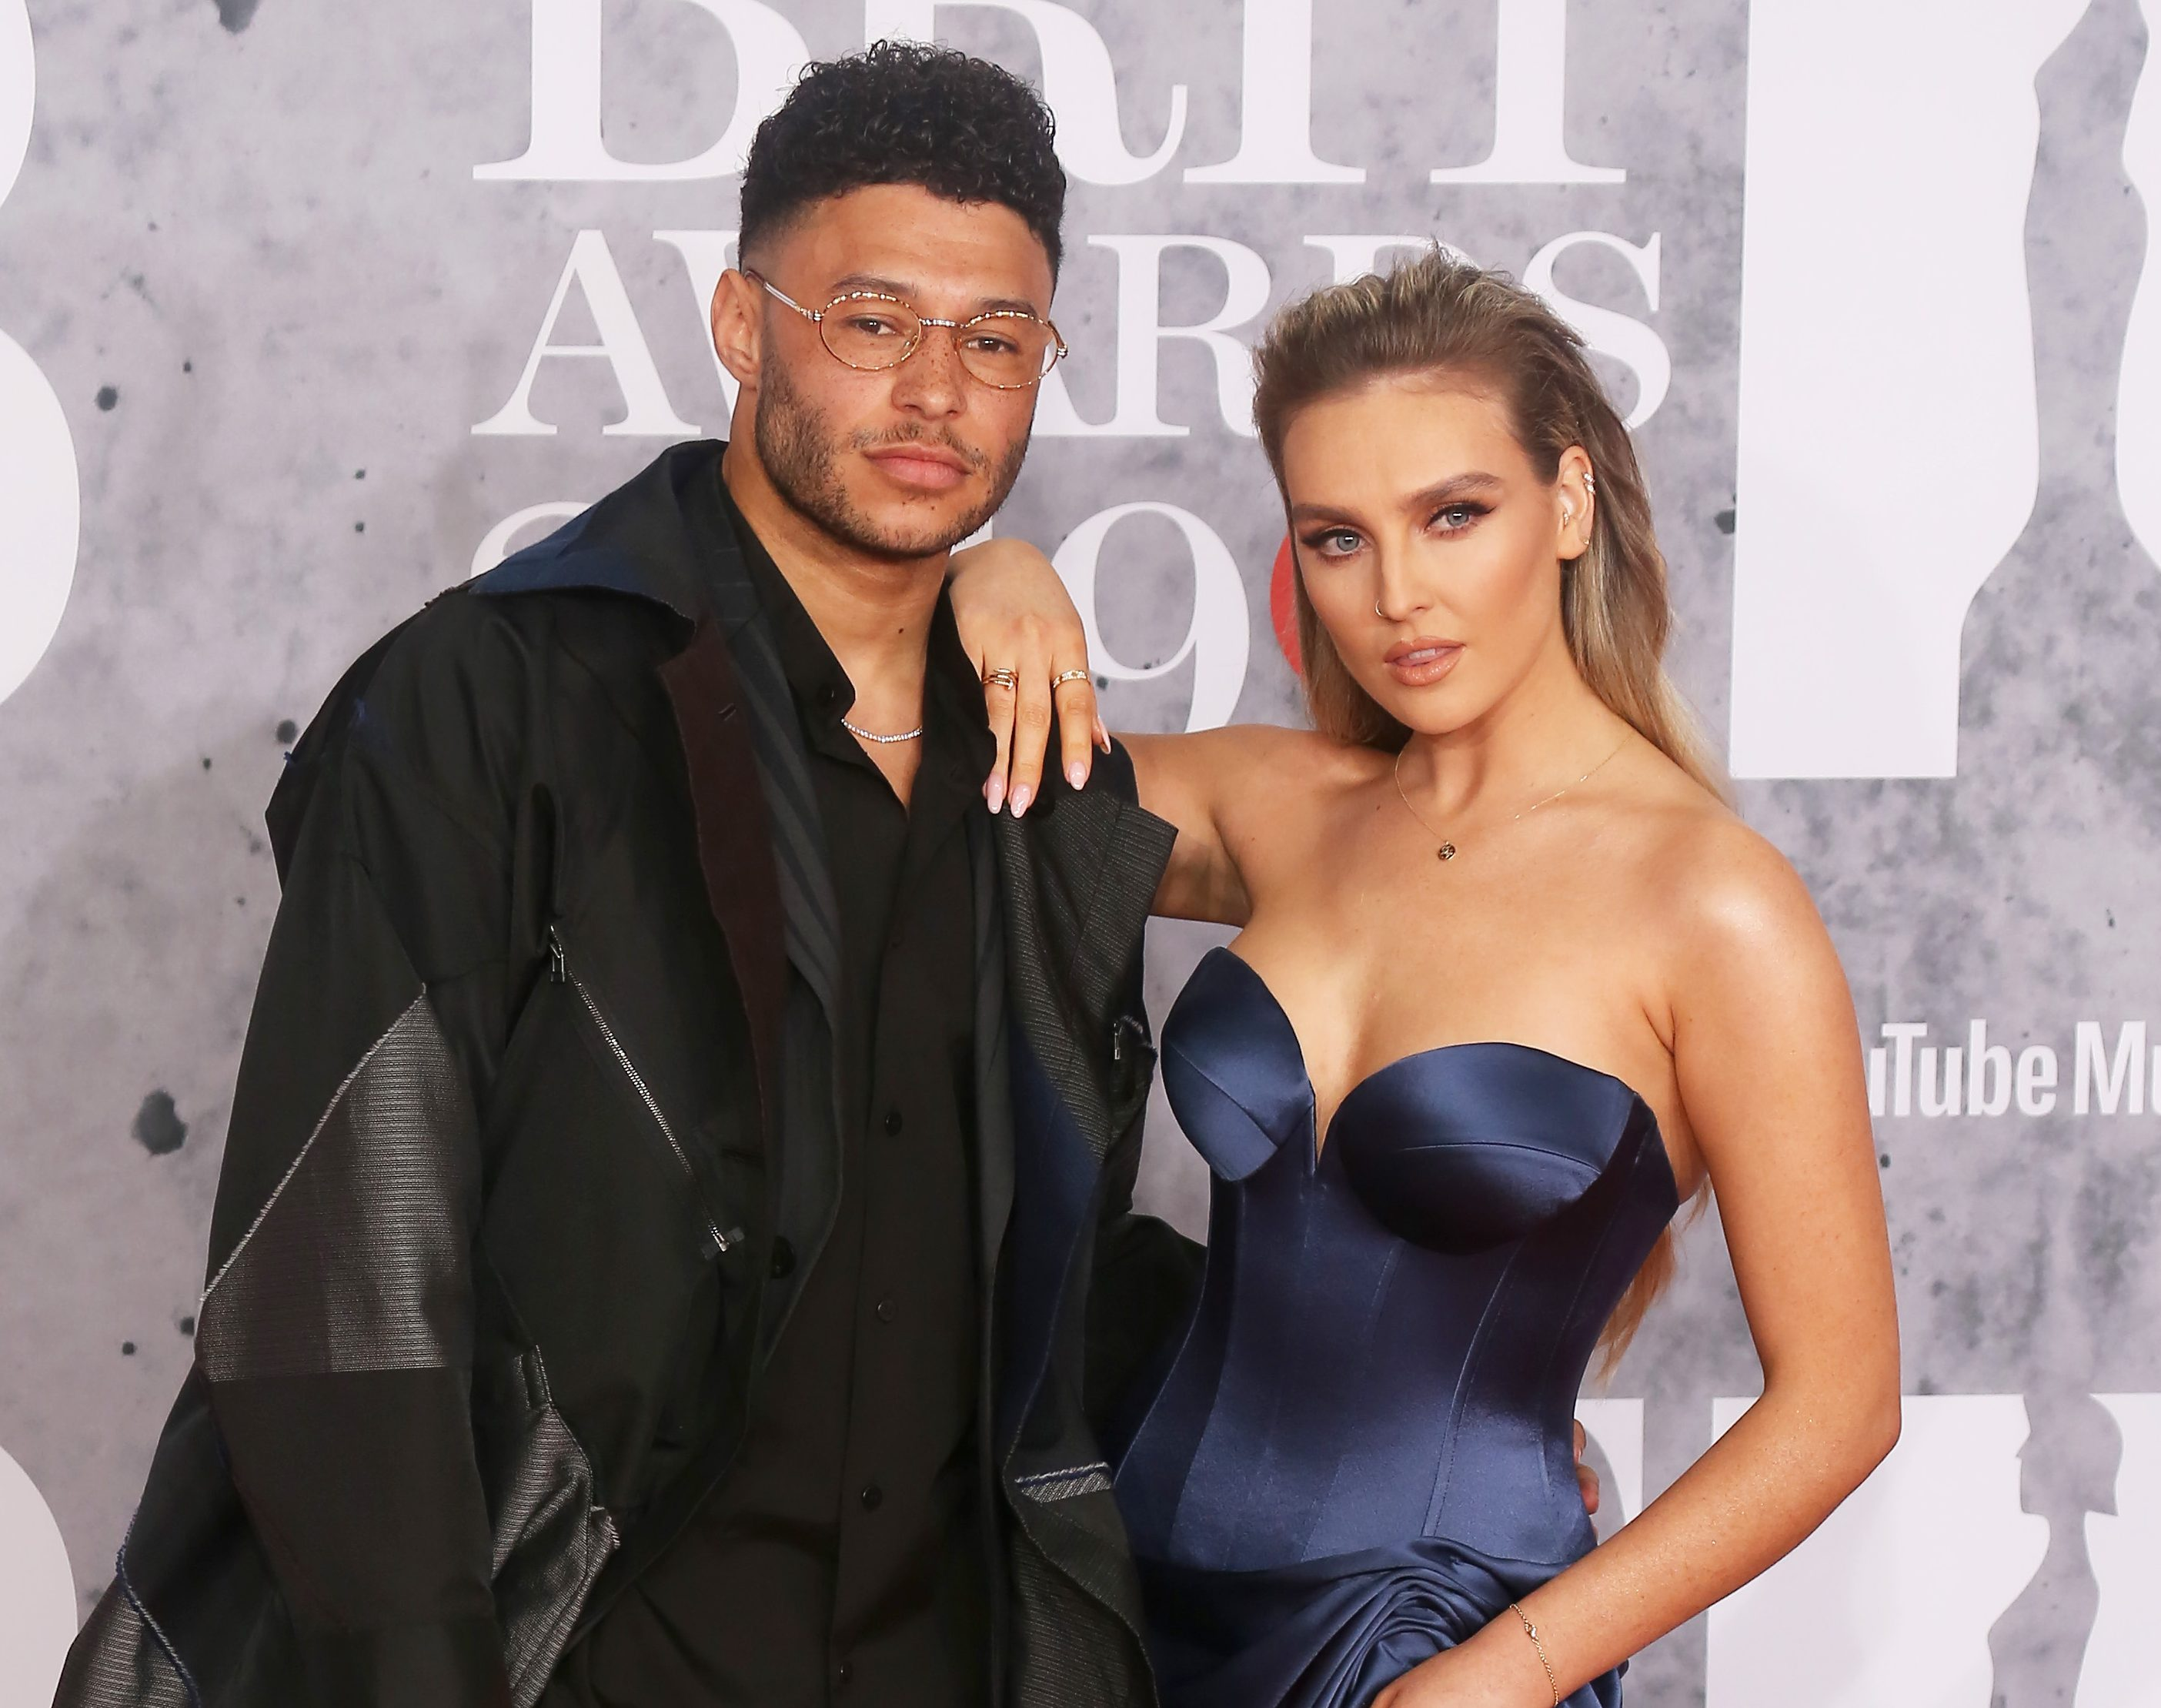 Perrie Edwards and Alex Oxlade-Chamberlain reveal new addition to their family on Good Morning Britain